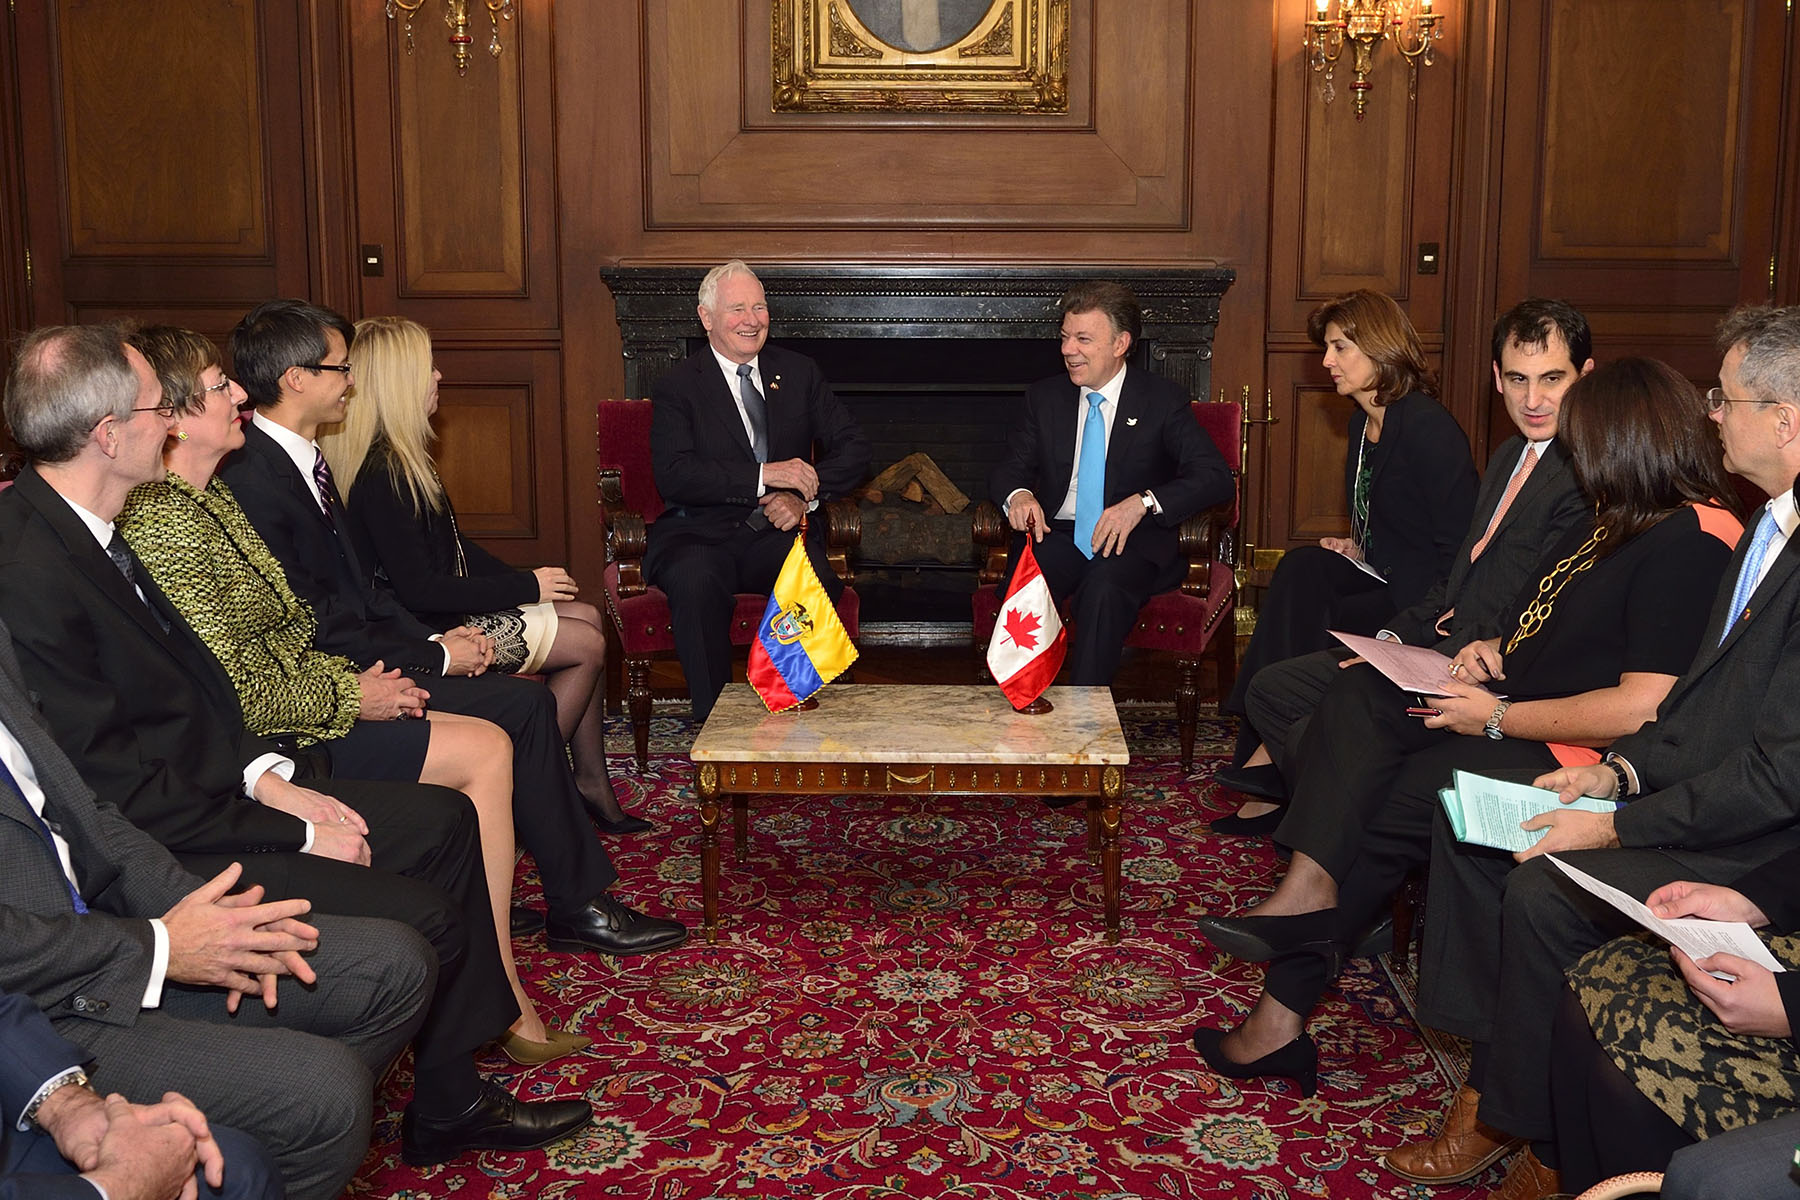 The Governor General met with President Santos Calderón to discuss key areas of Colombian engagement with Canada.